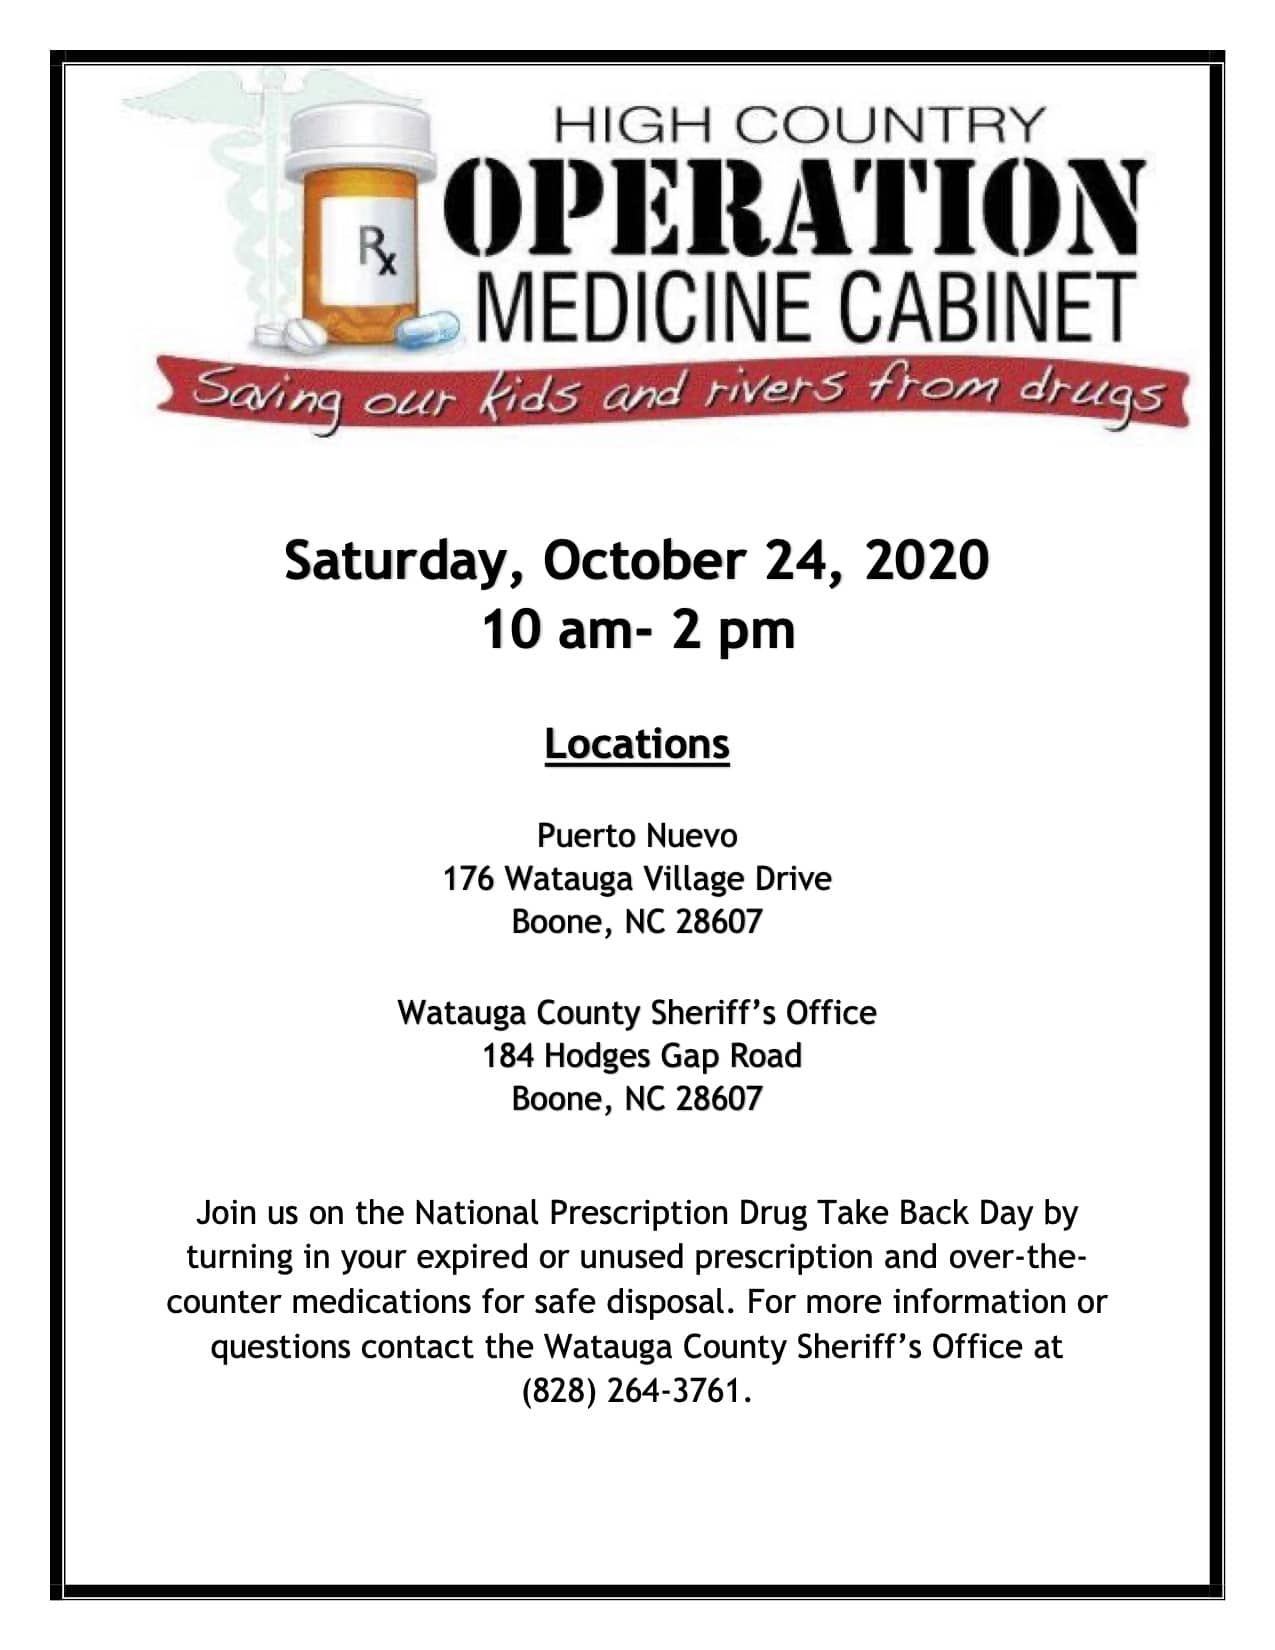 Operation Medicine Cabinet to take place Saturday October 24, 2020